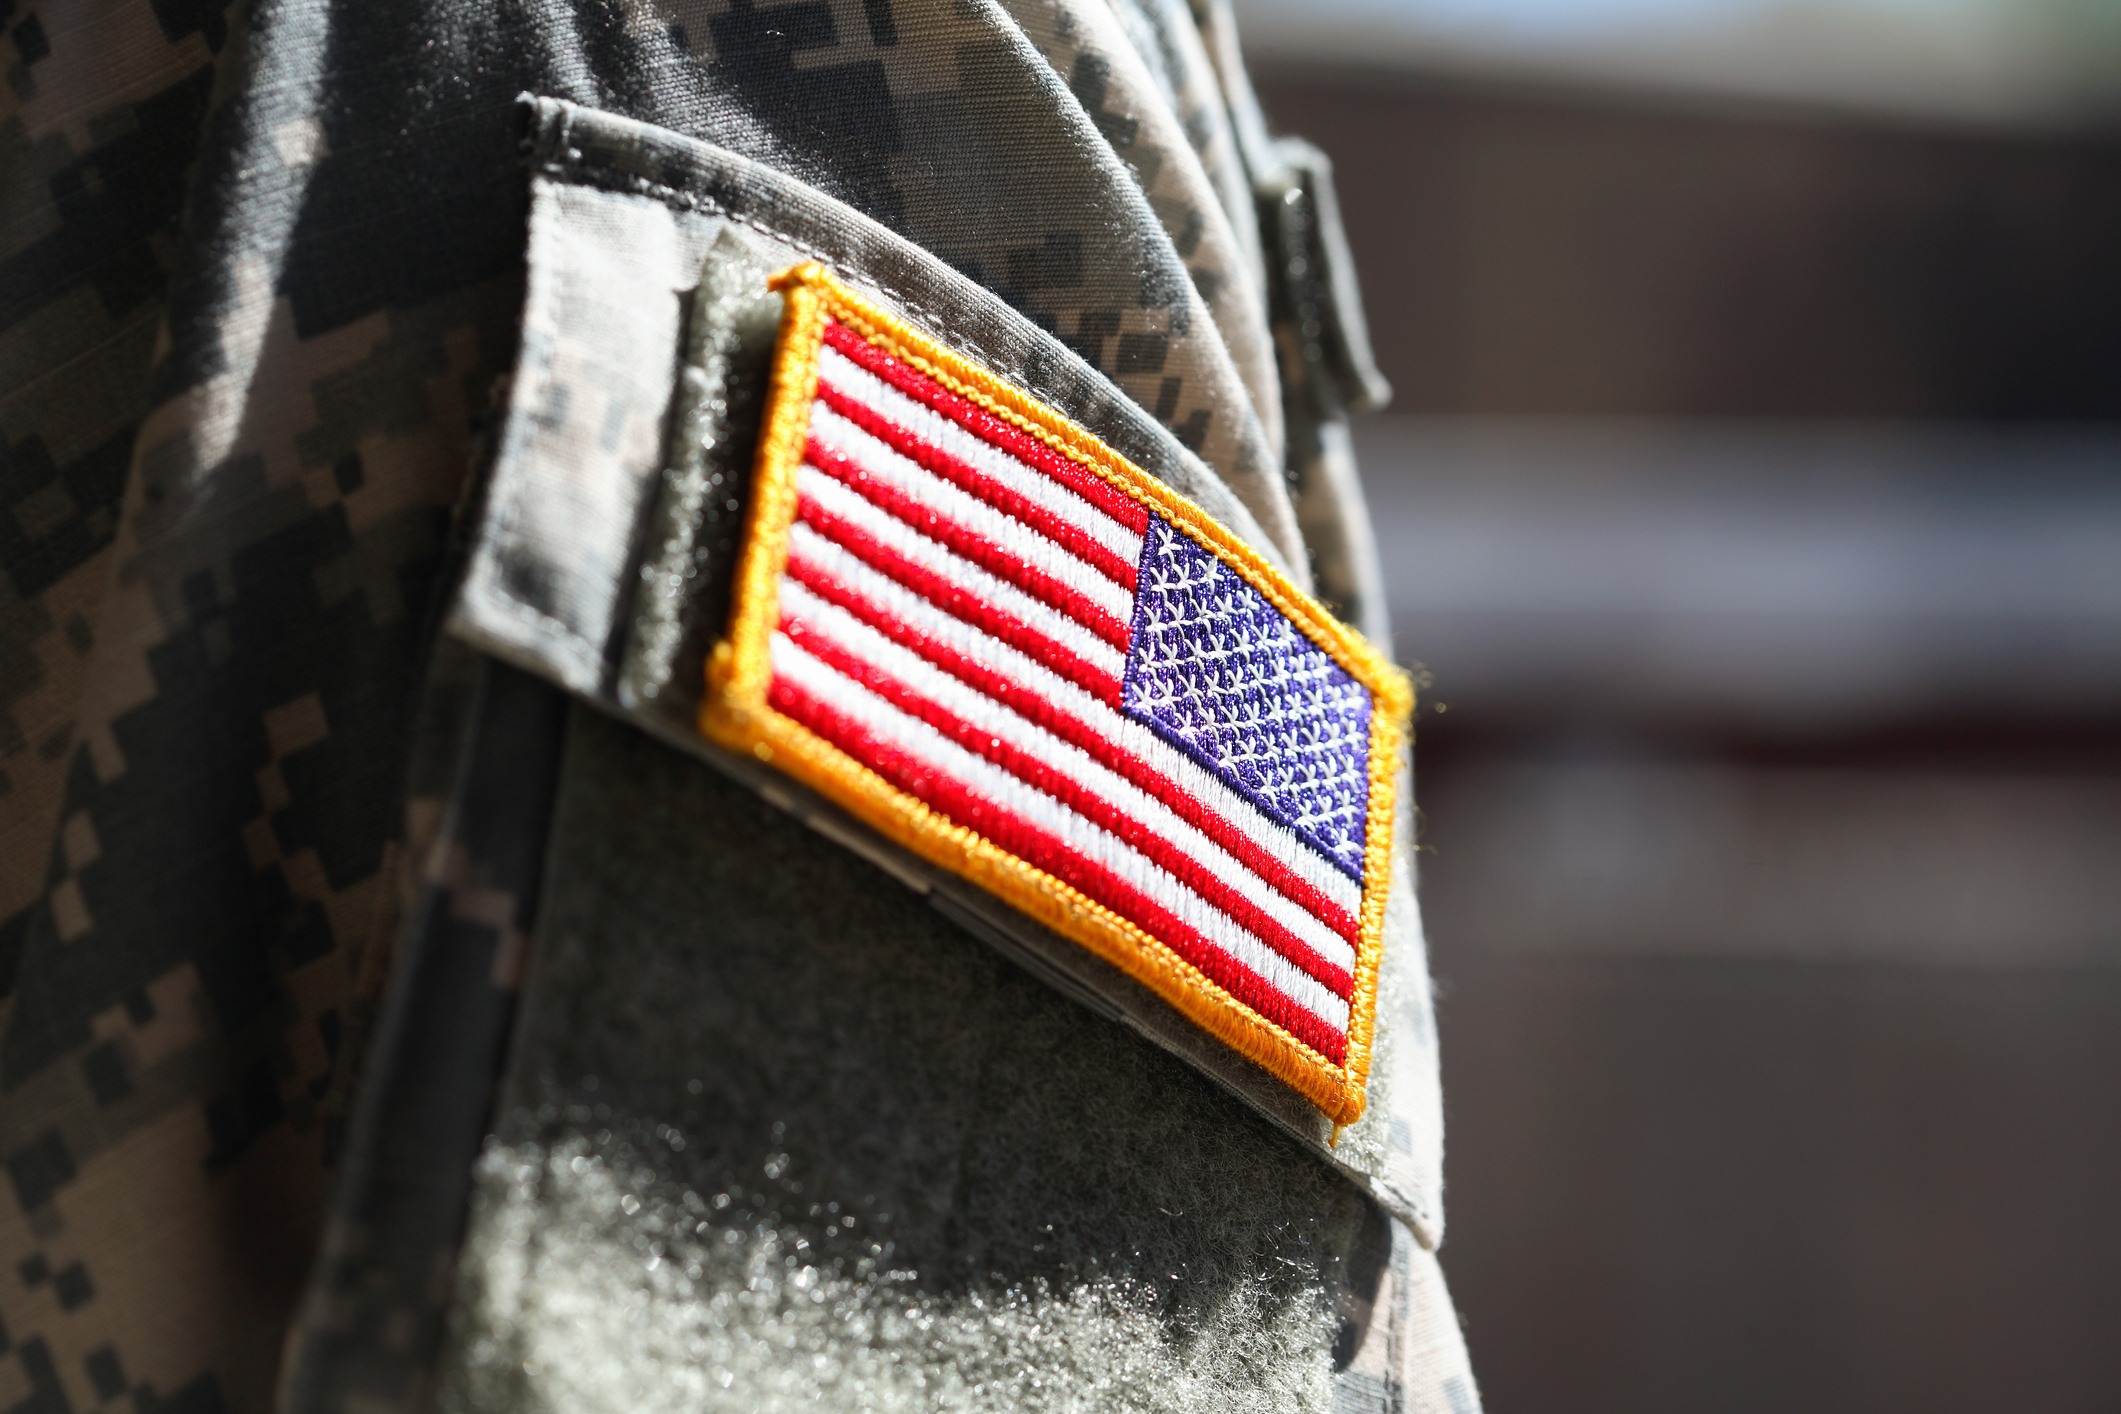 Military soldier's American flag arm patch.